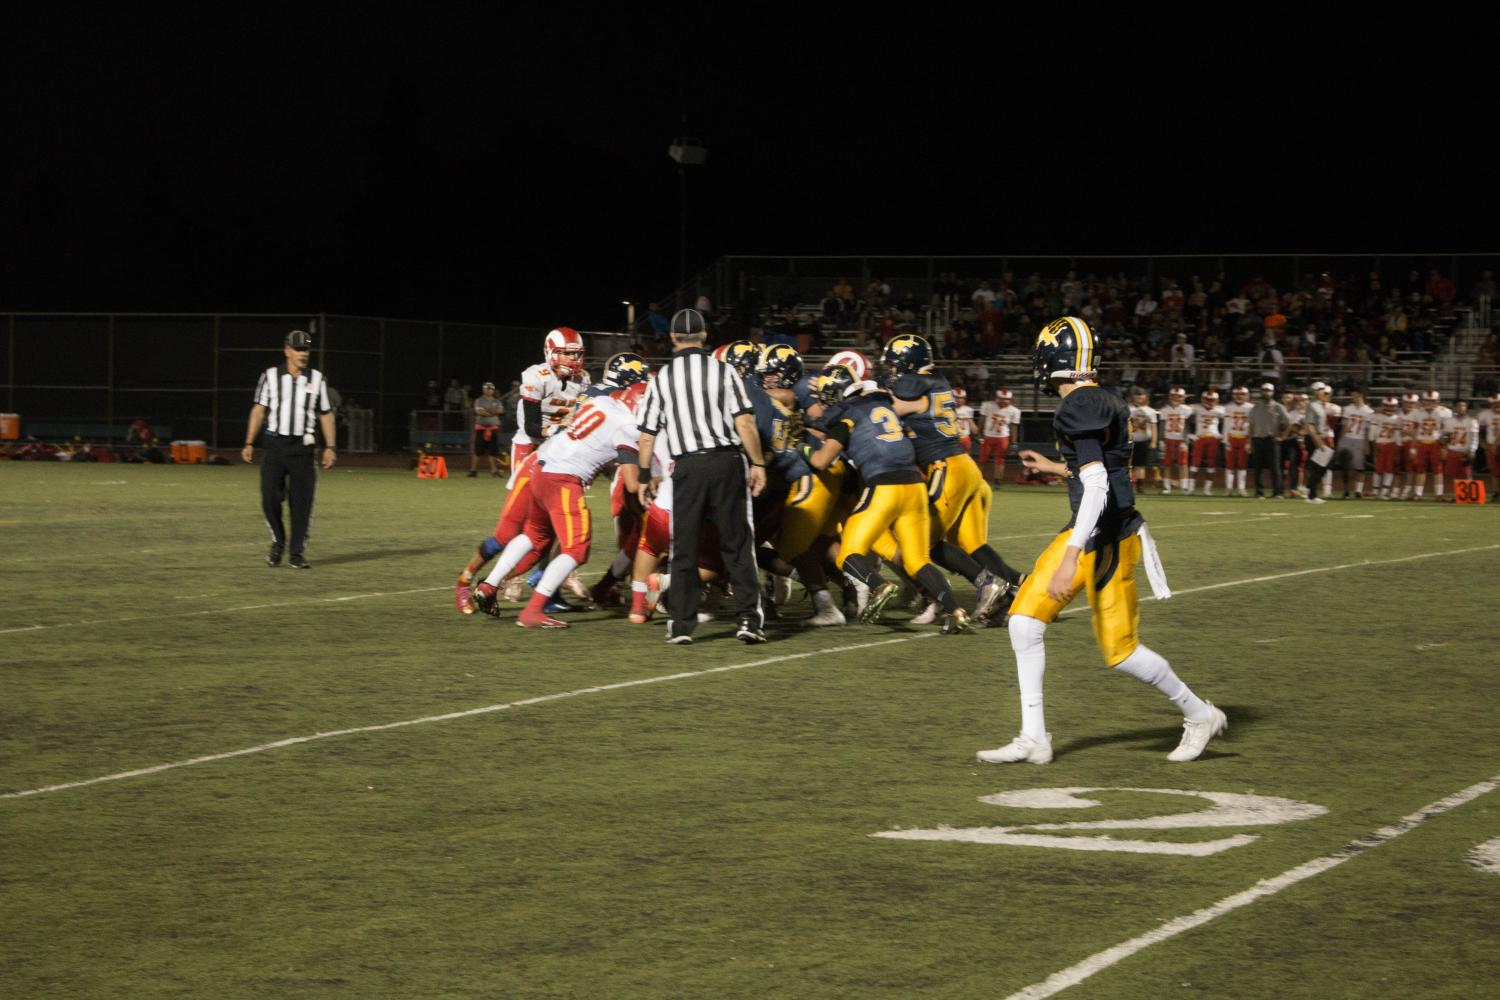 The Lincoln Lions vs. Willow Glen Rams on Sept 8, 2017 (Isaiah Velasquez/Lincoln Lion Tales)